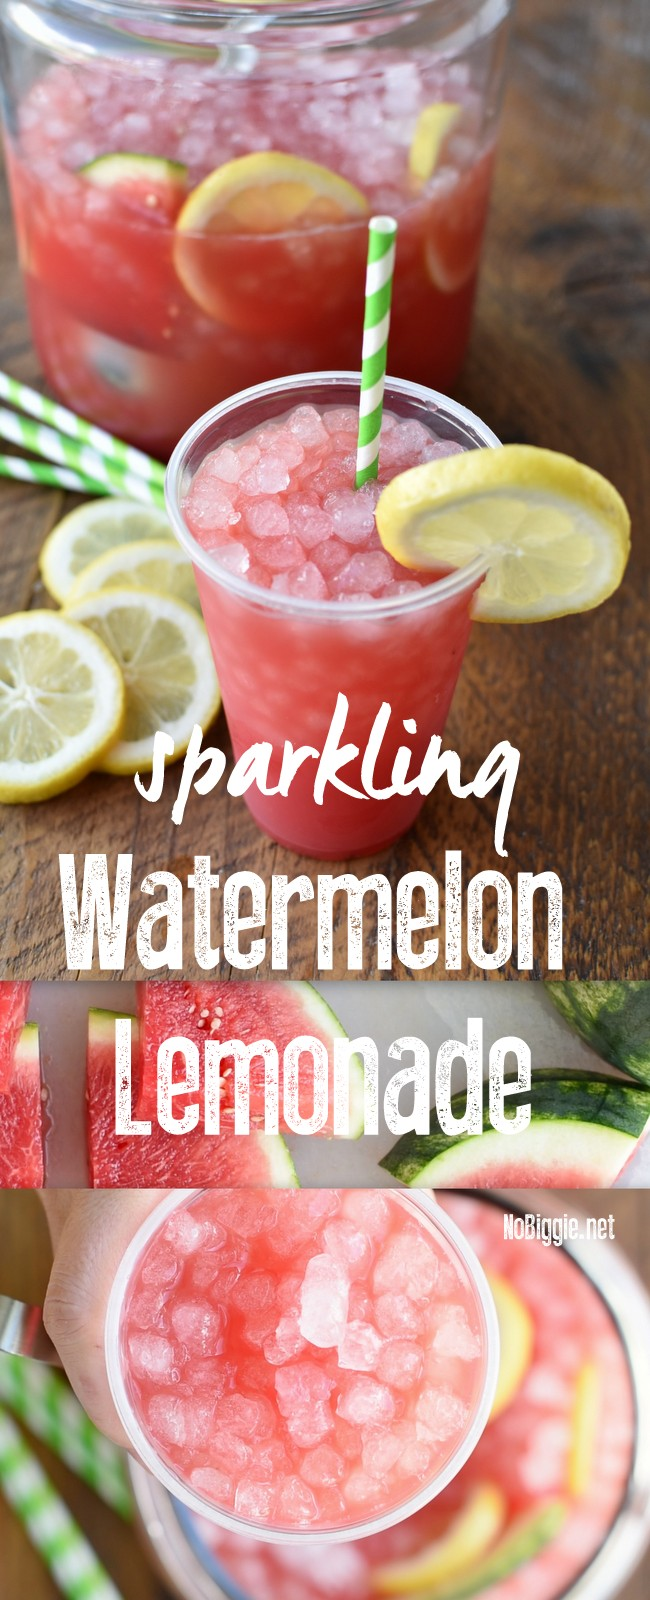 Sparkling Watermelon Lemonade made with fresh watermelon juice and loaded with tons of pebble ice #sparklingwatermelonlemonade #watermelon #lemonade #summerdrinks #Watermelonrecipes